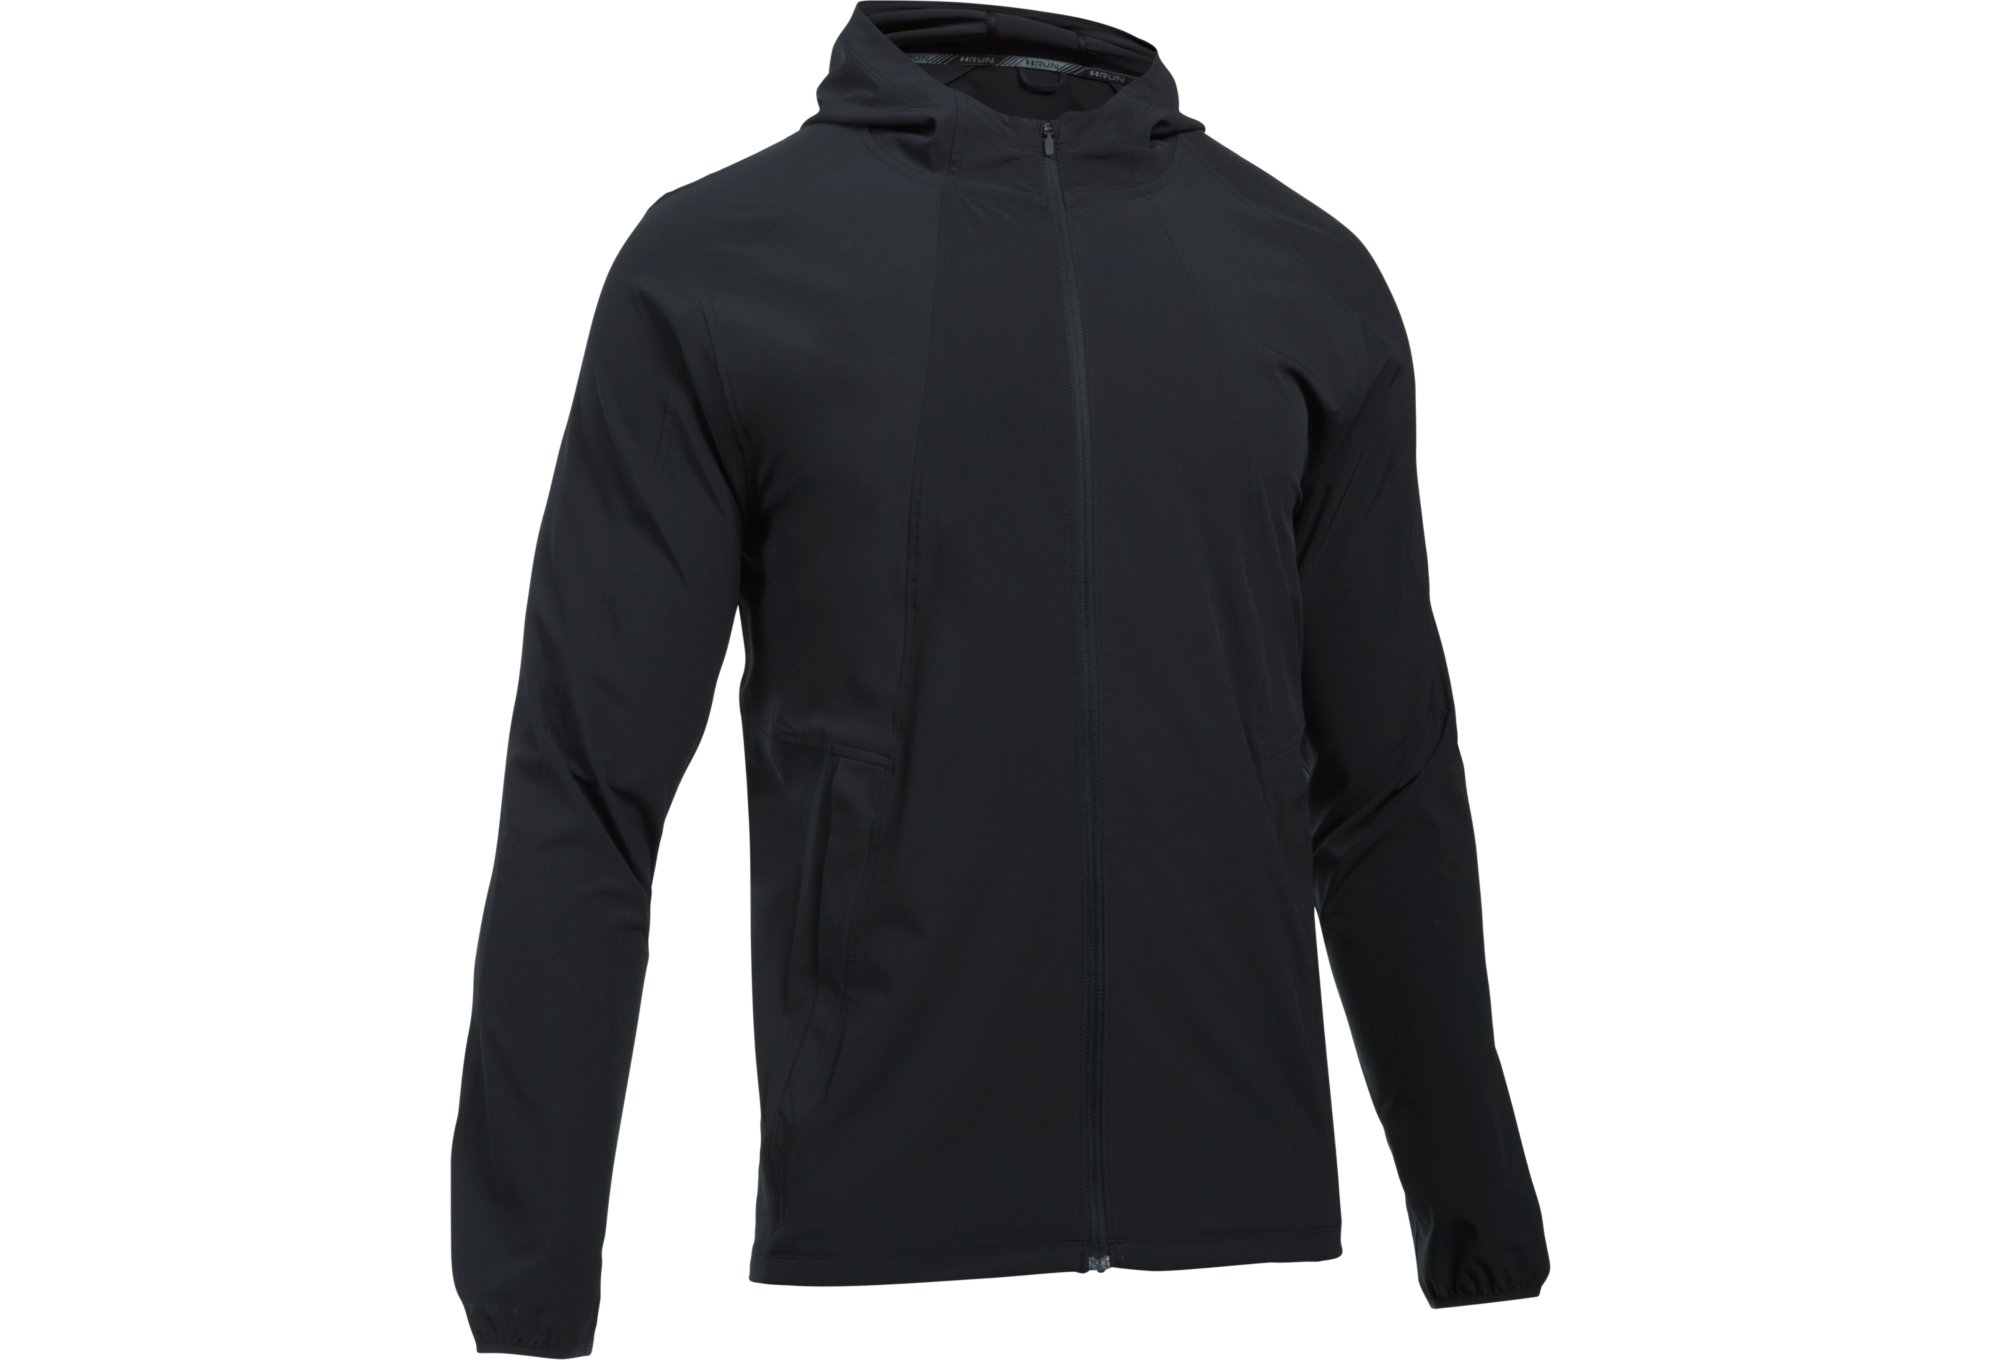 Under Armour Outrun The Storm Windbreaker Jacket Black Alltricks Com